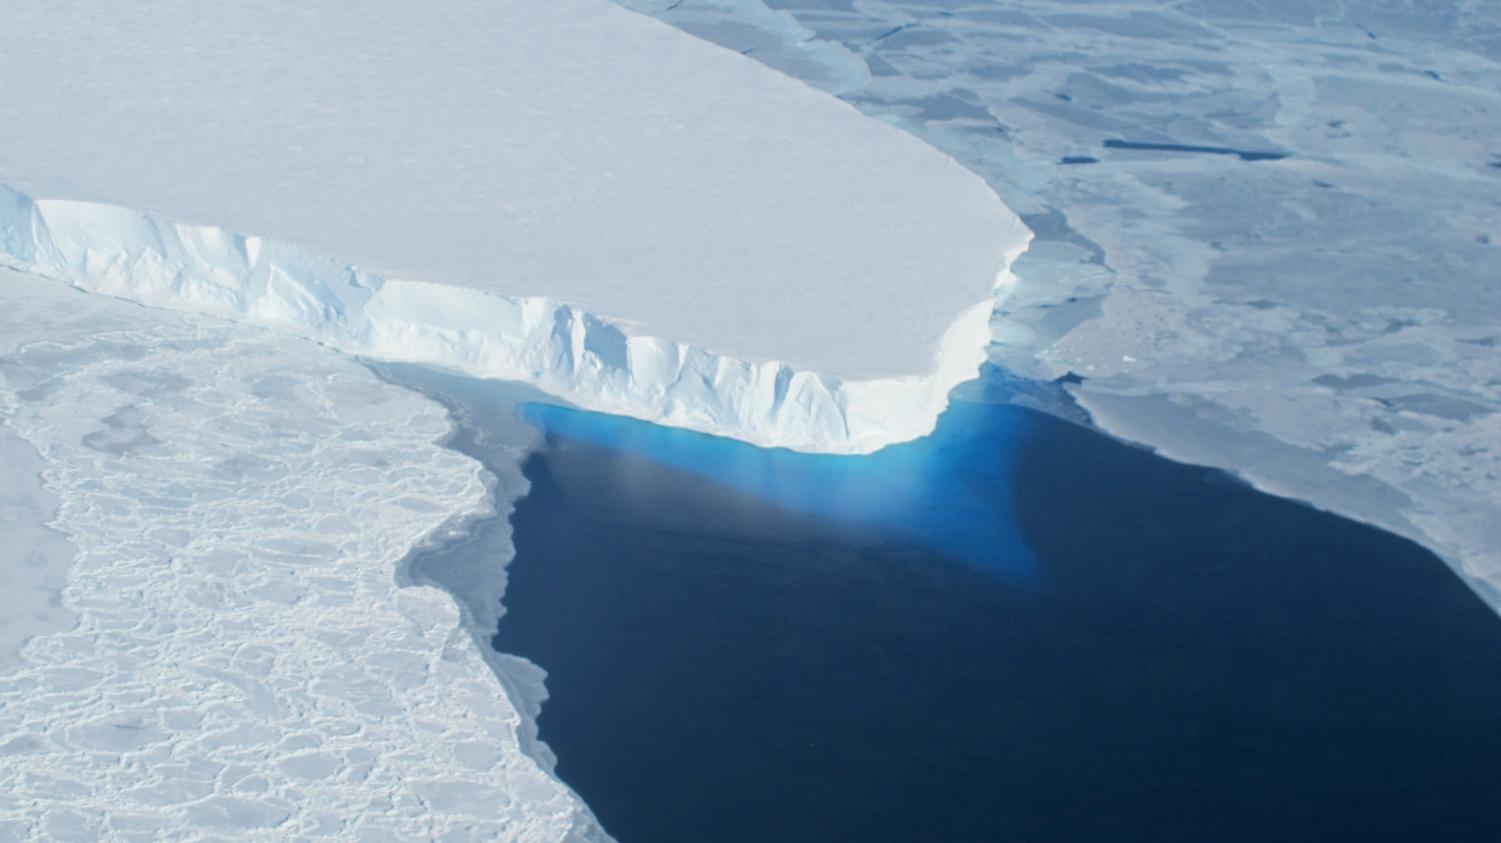 Serac is a block or ridge of glacial ice, often formed by intersecting crevasses on a glacier.